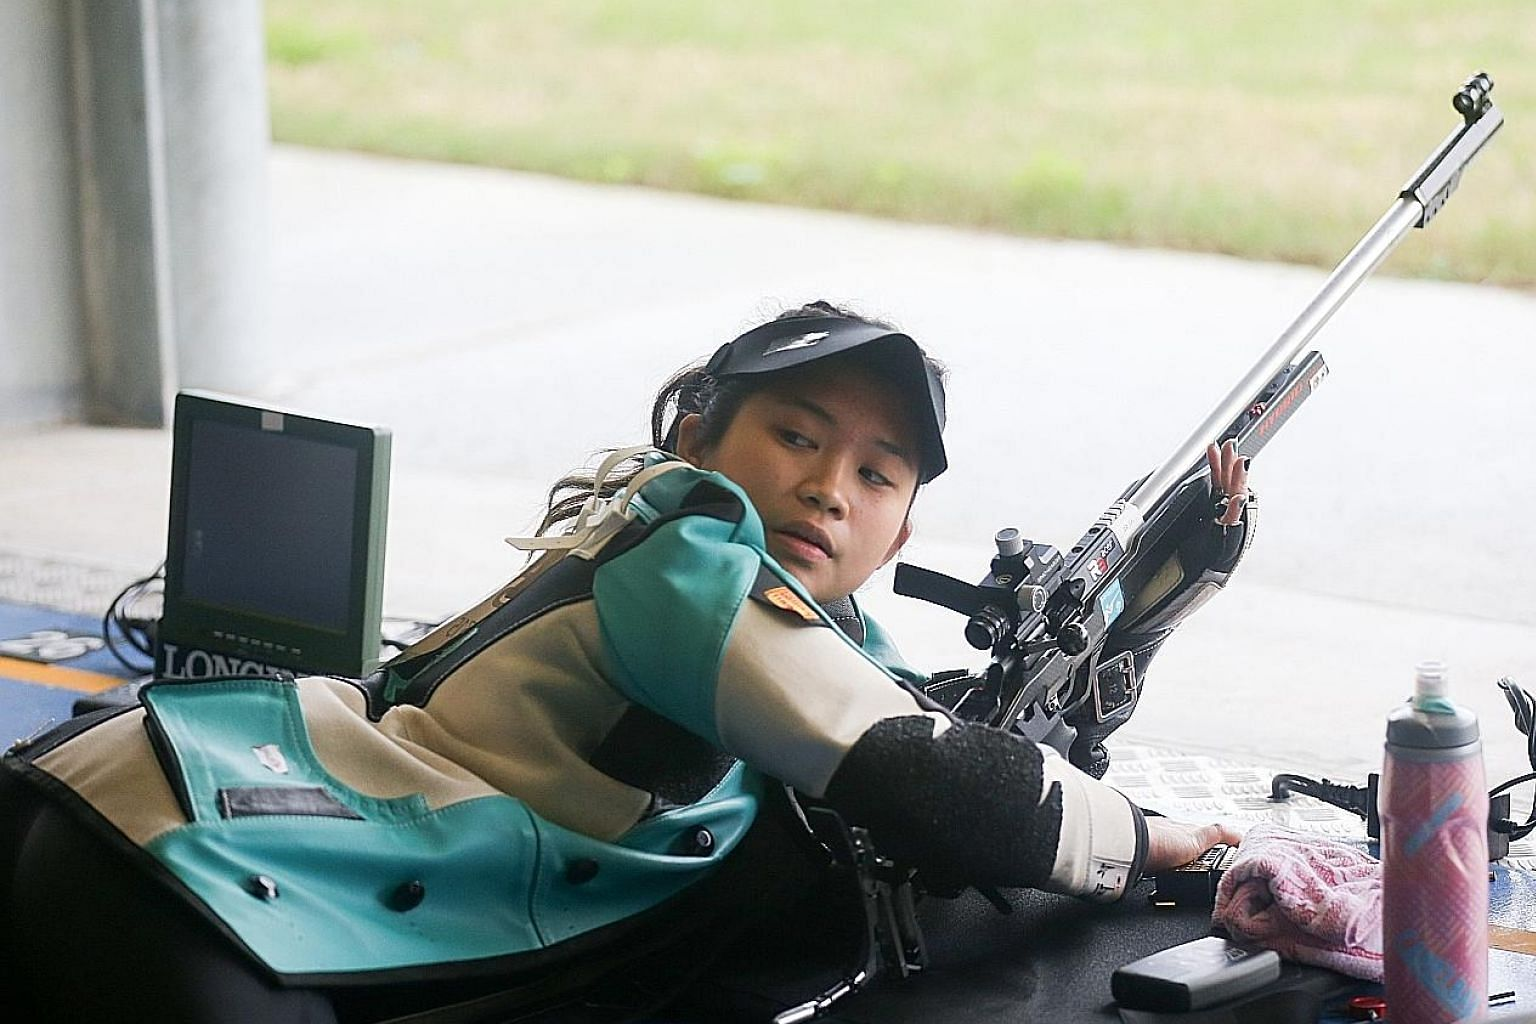 Martina Veloso won two gold medals (10m air rifle and 50m rifle prone) to account for 40 per cent of Team Singapore's golds and emerge their top individual athlete at last year's Commonwealth Games on the Gold Coast.